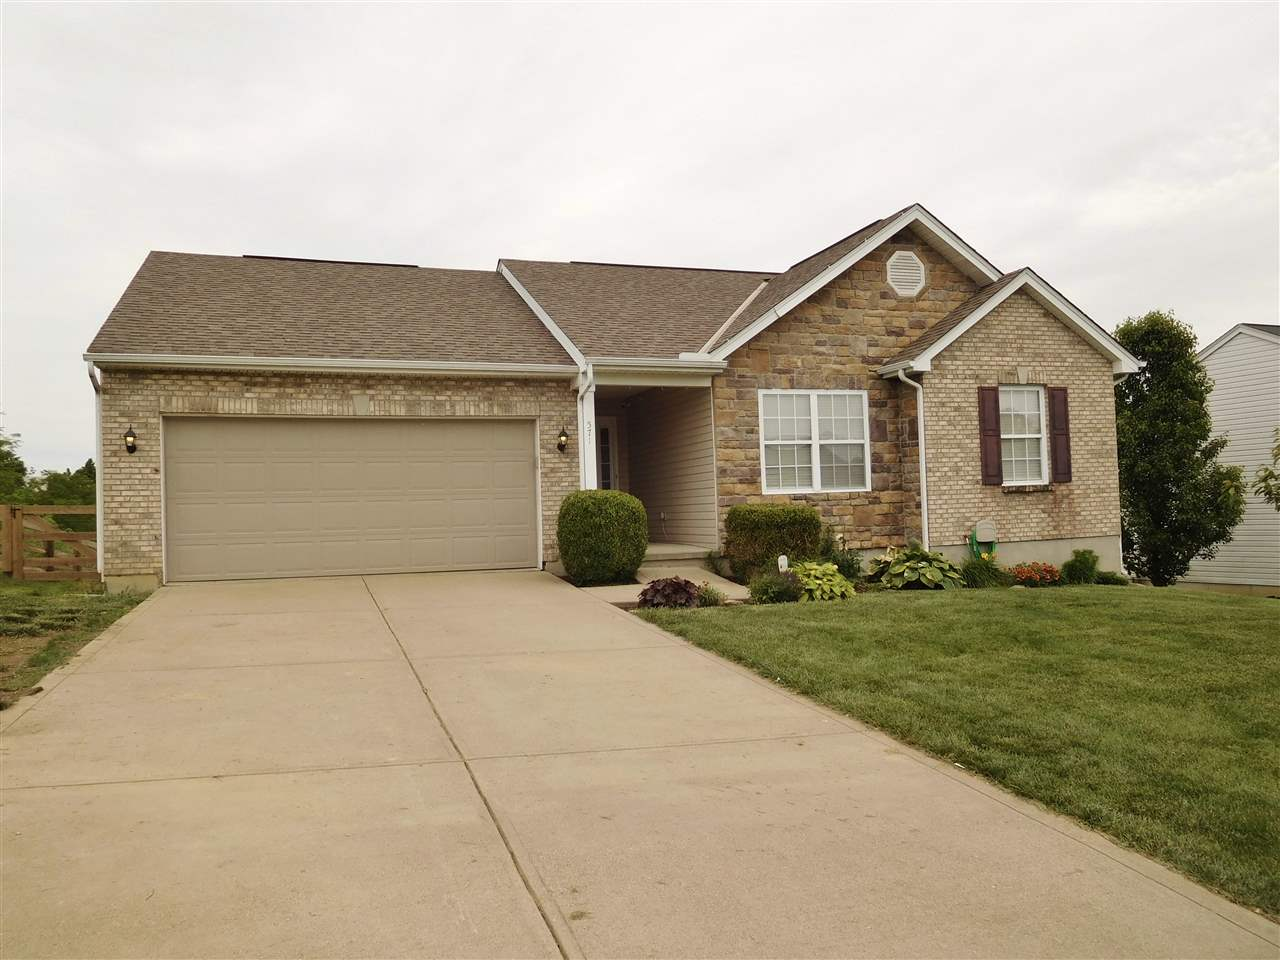 Photo 1 for 571 Rosebud Cir Walton, KY 41094